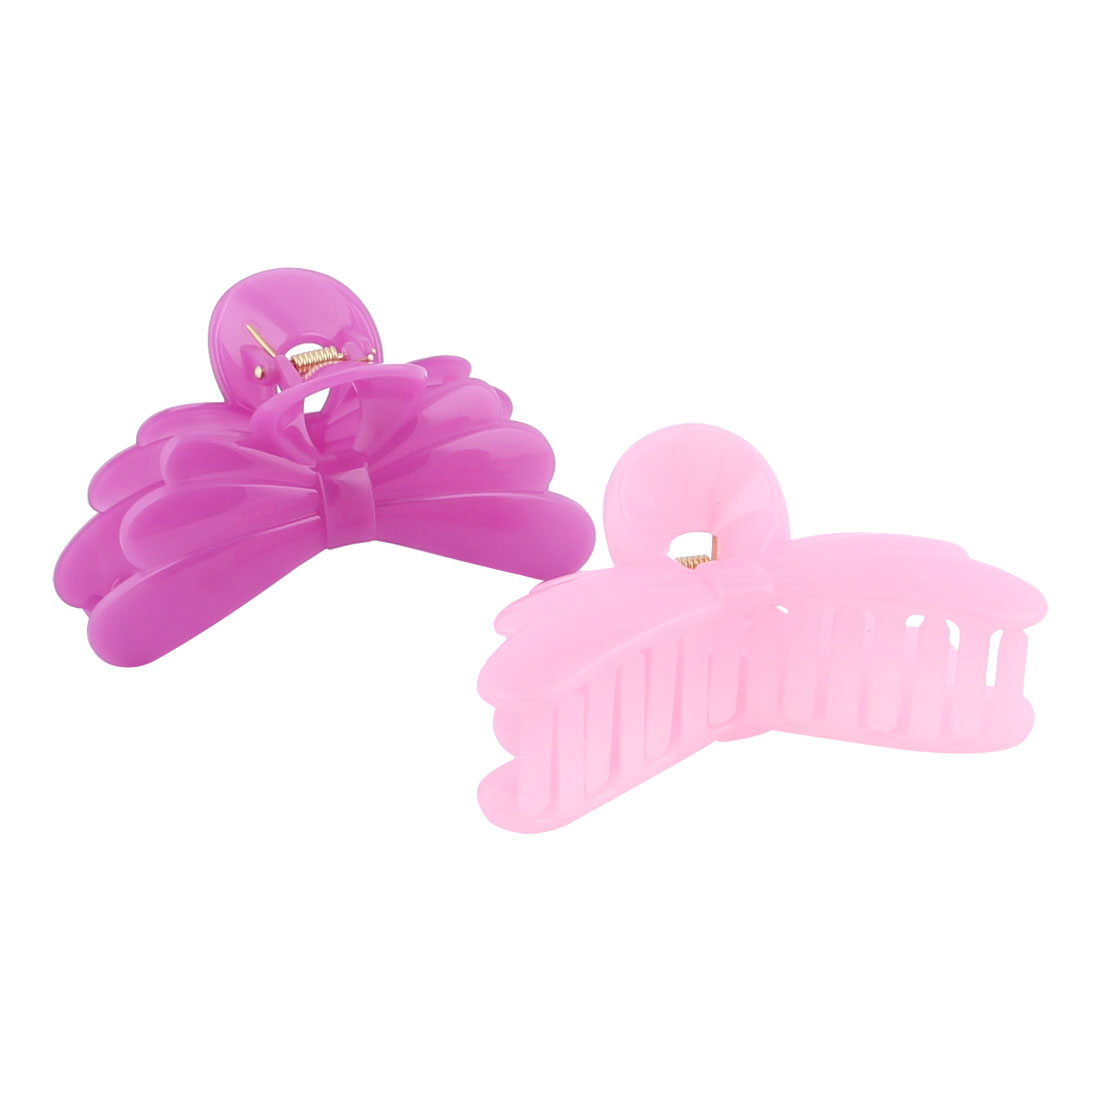 Ladies Plastic Butterfly Shape Spring Loaded Bathing Barrette Claw Clamp Clip 2pcs